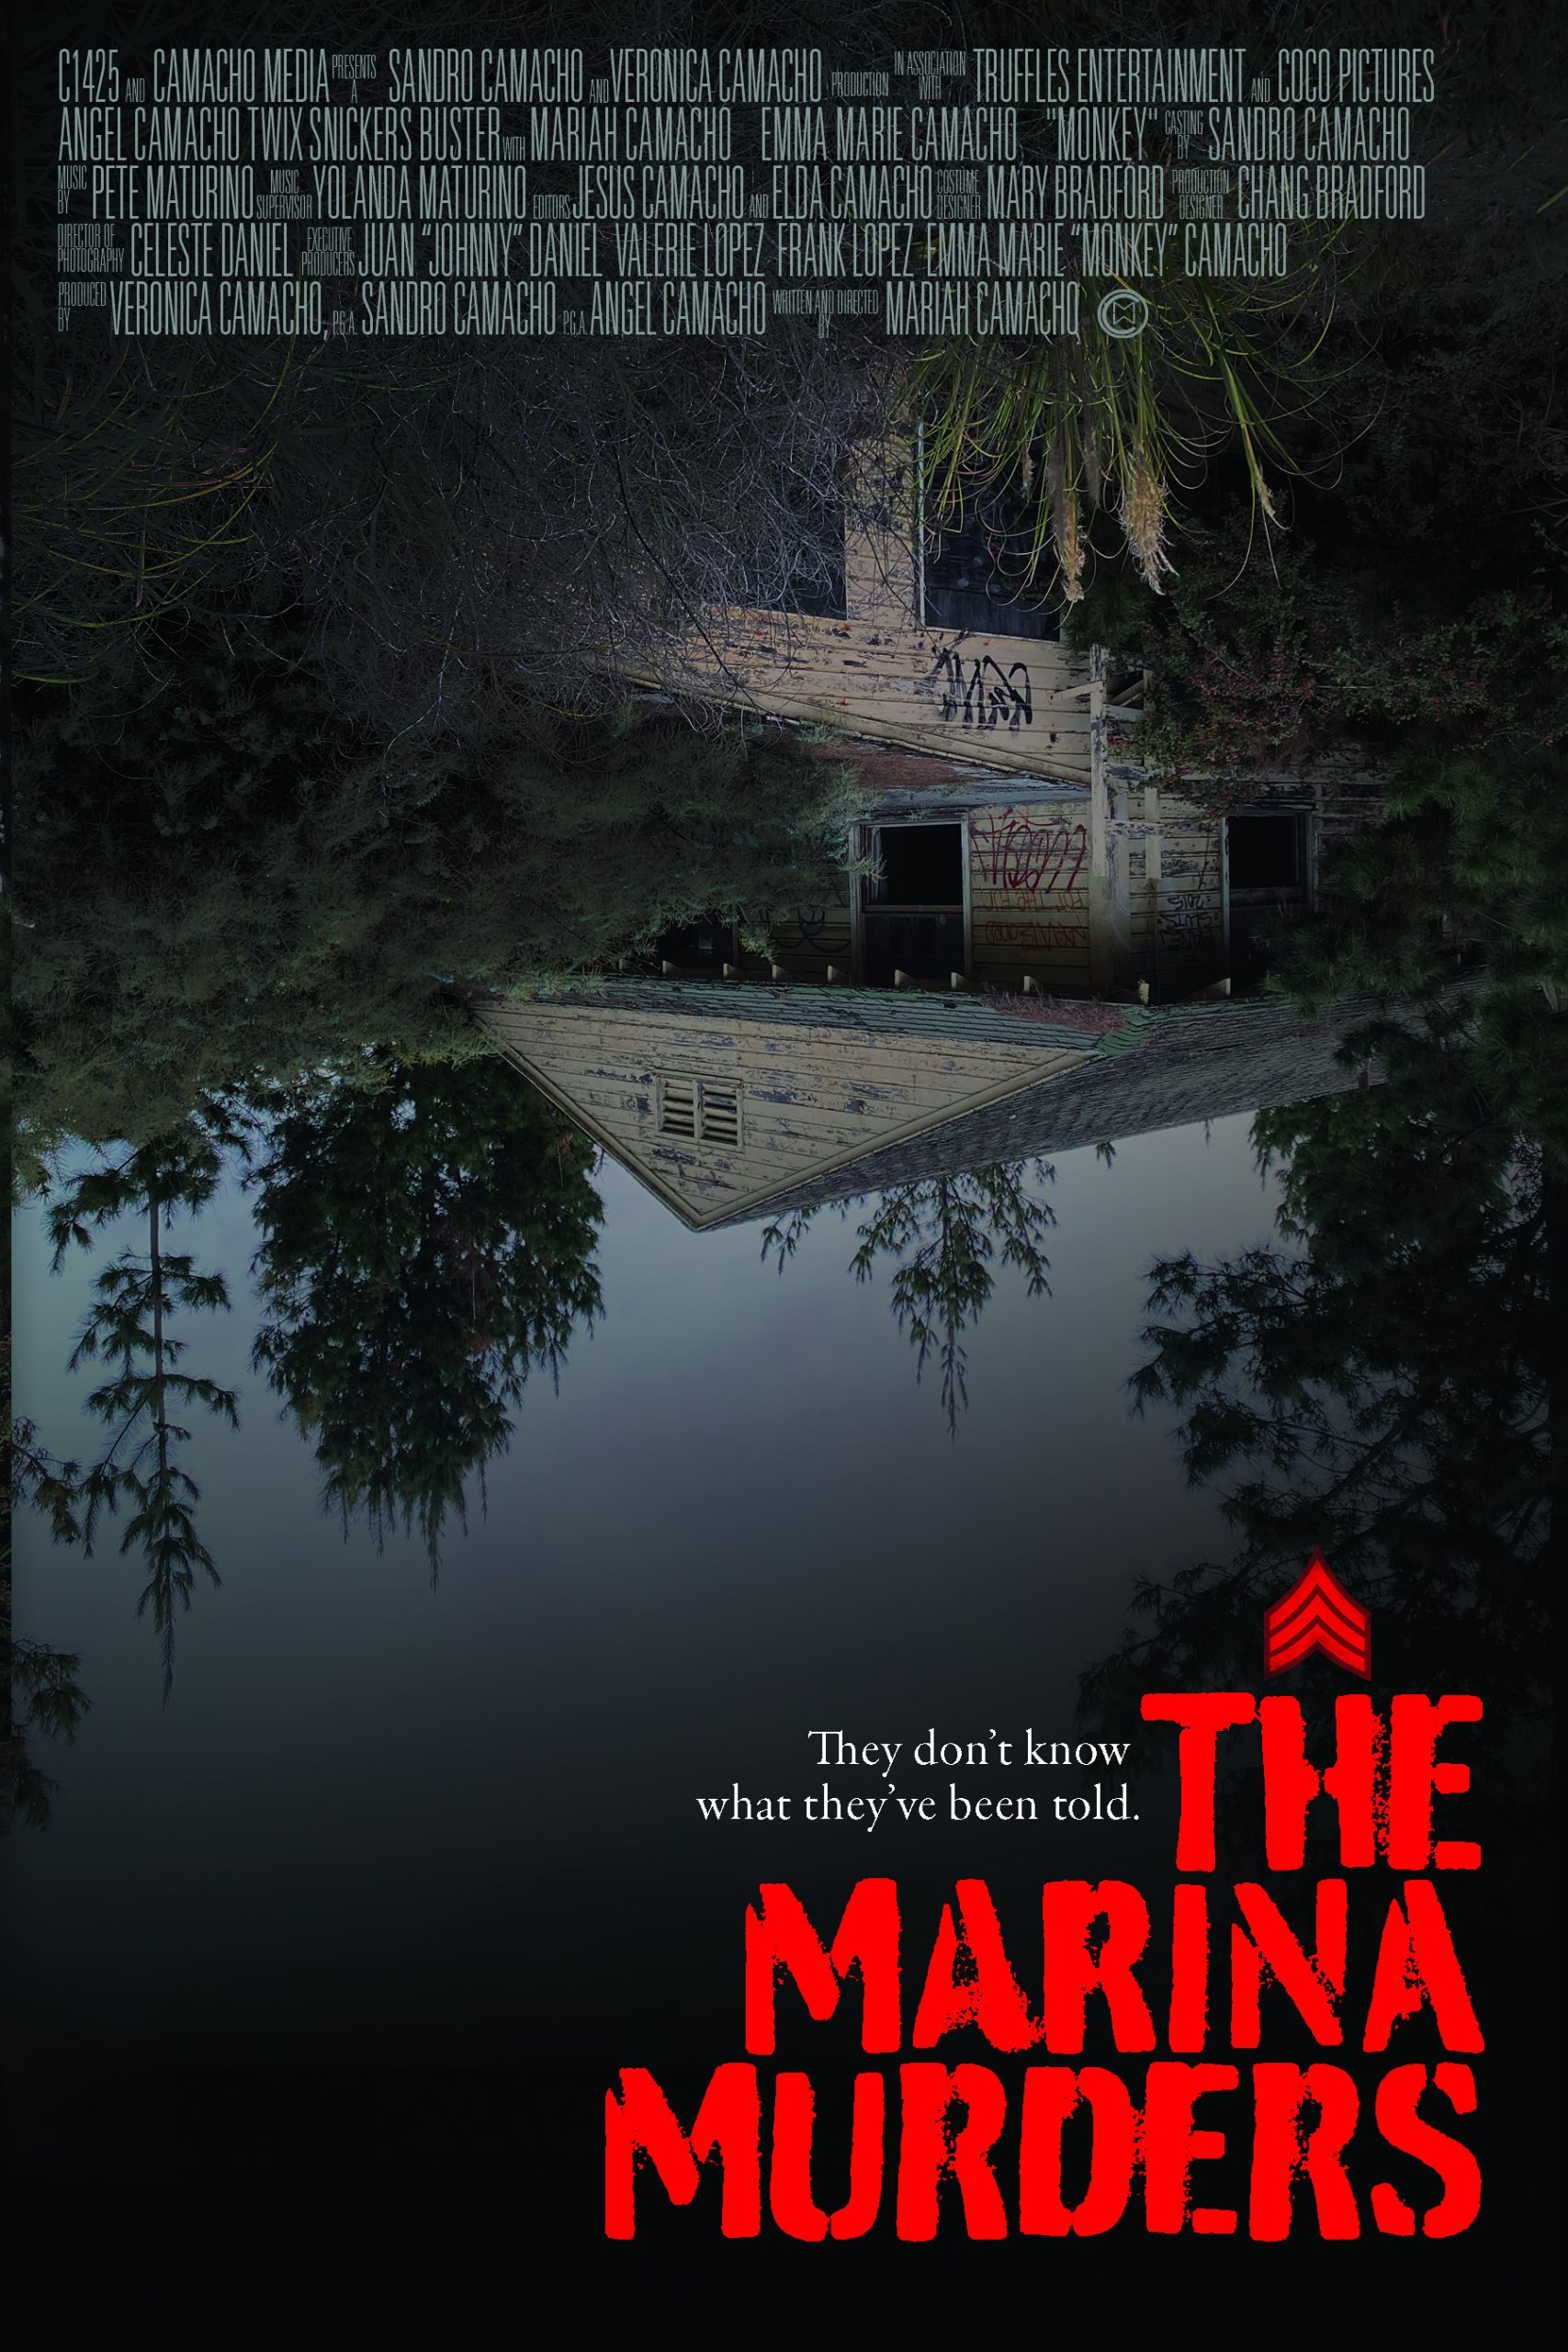 Movie poster for a horror movie where a cabin is displayed upside down